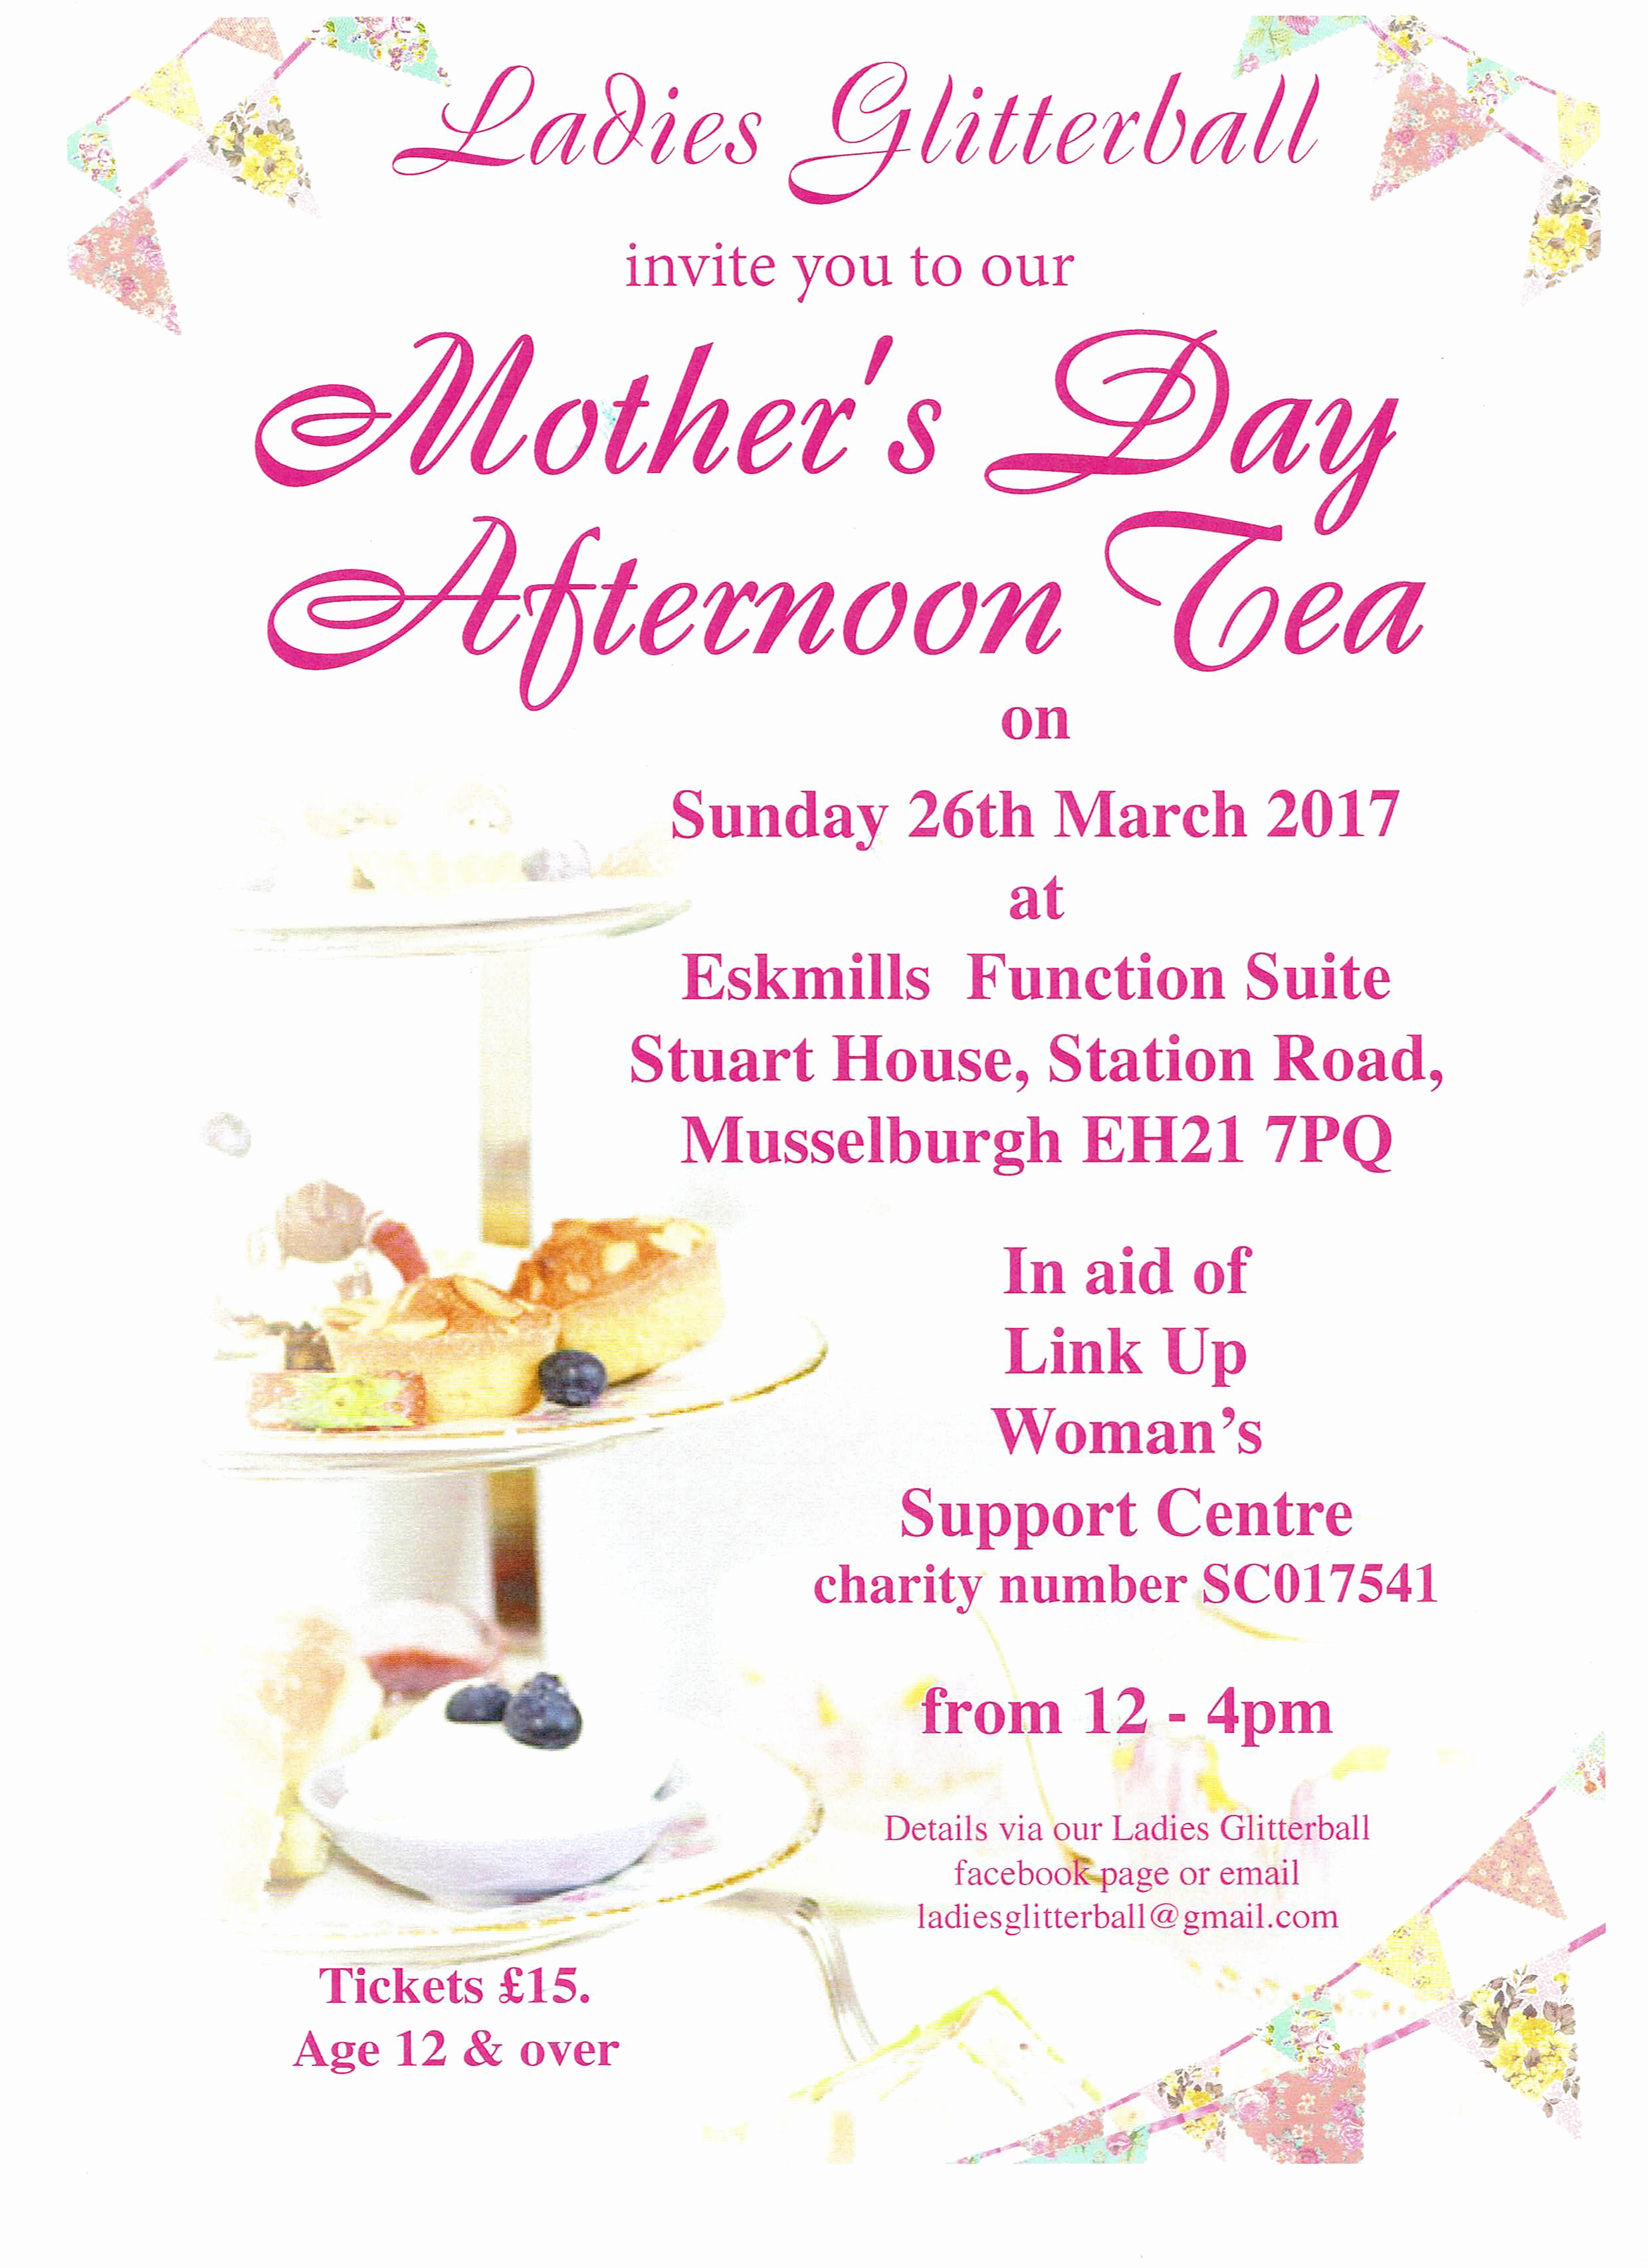 la s glitterball host mothers day afternoon tea